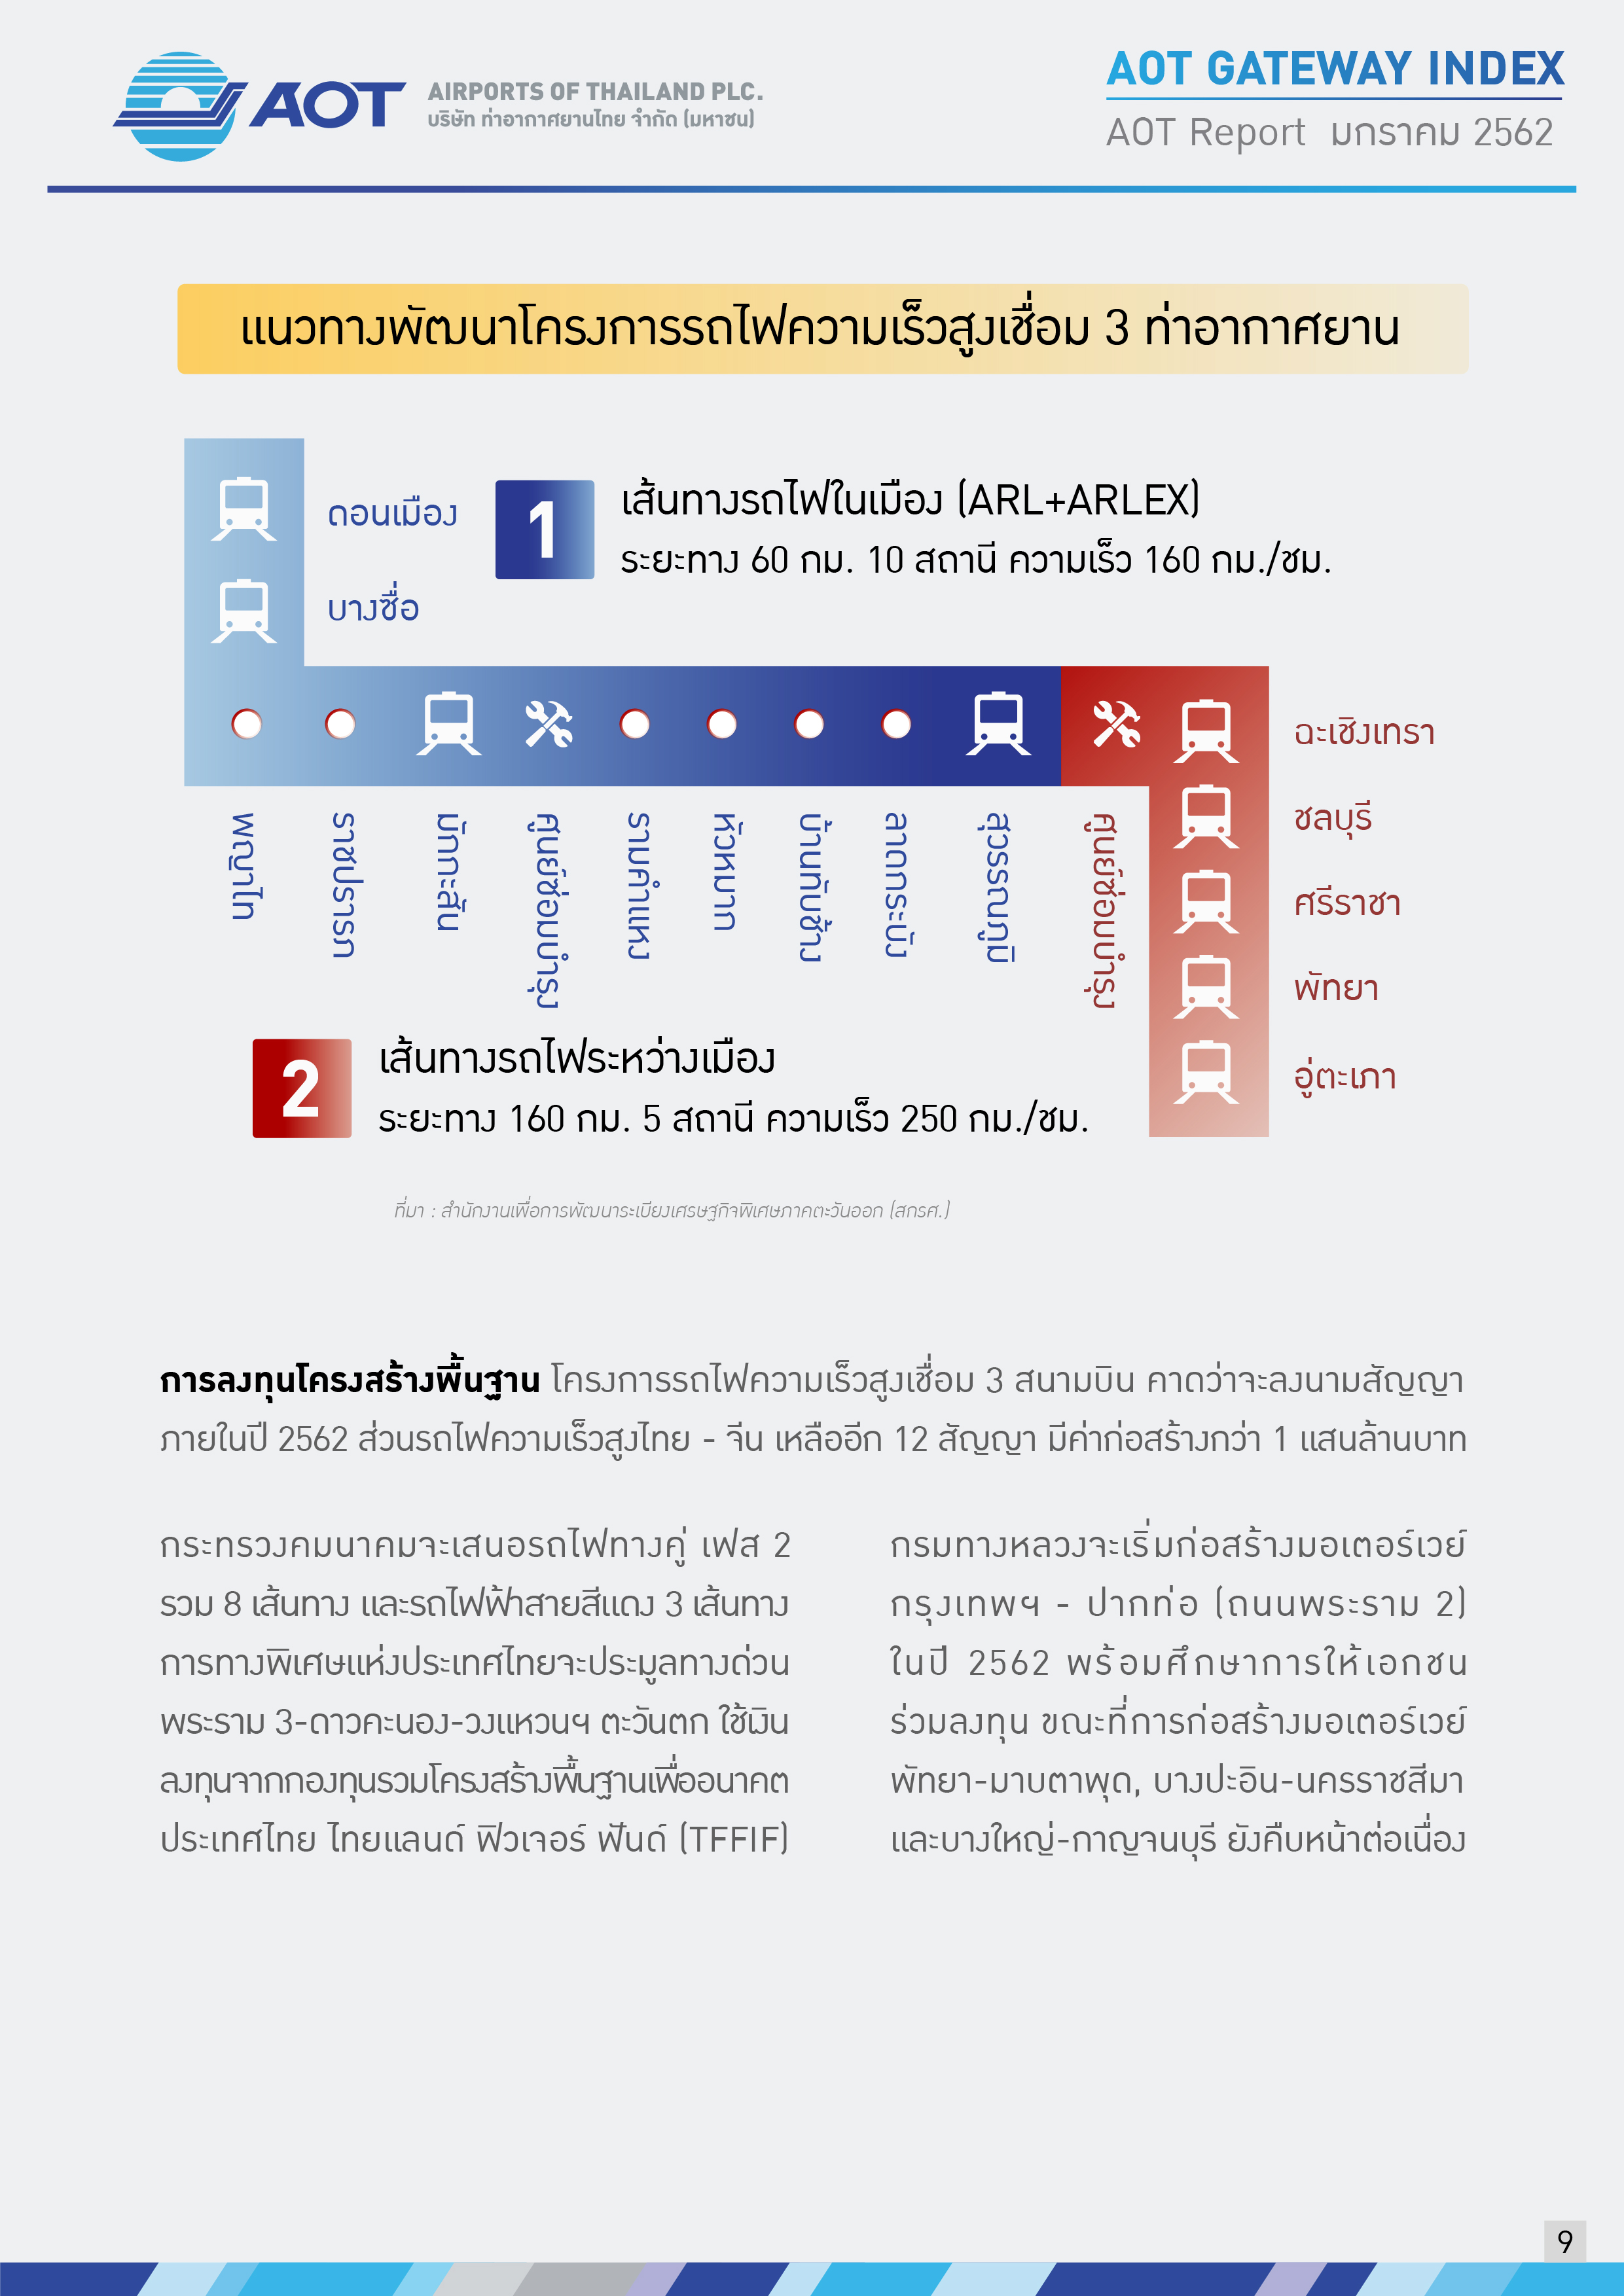 AOTcontent2019_Index_02_เศรษฐกิจโลก_V5_20190401_Page09